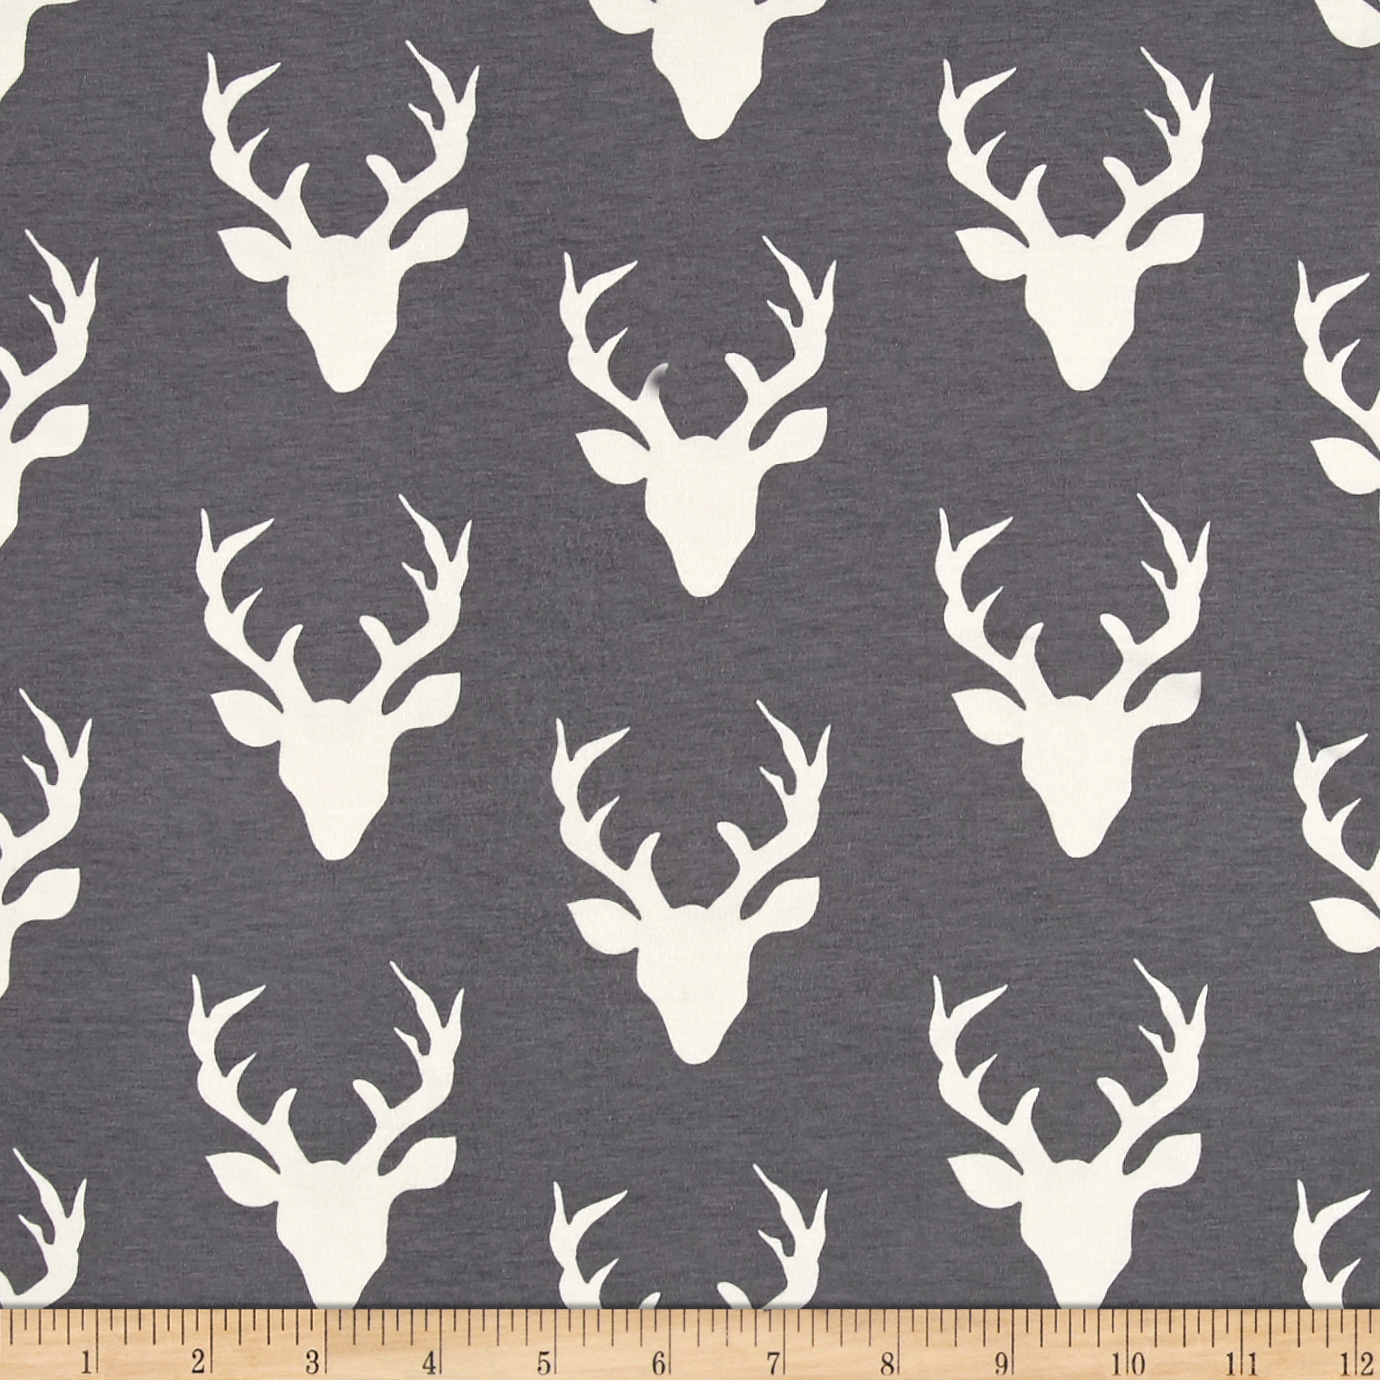 Art Gallery Buck Forest Jersey Knit Moonstone Fabric by Art Gallery in USA